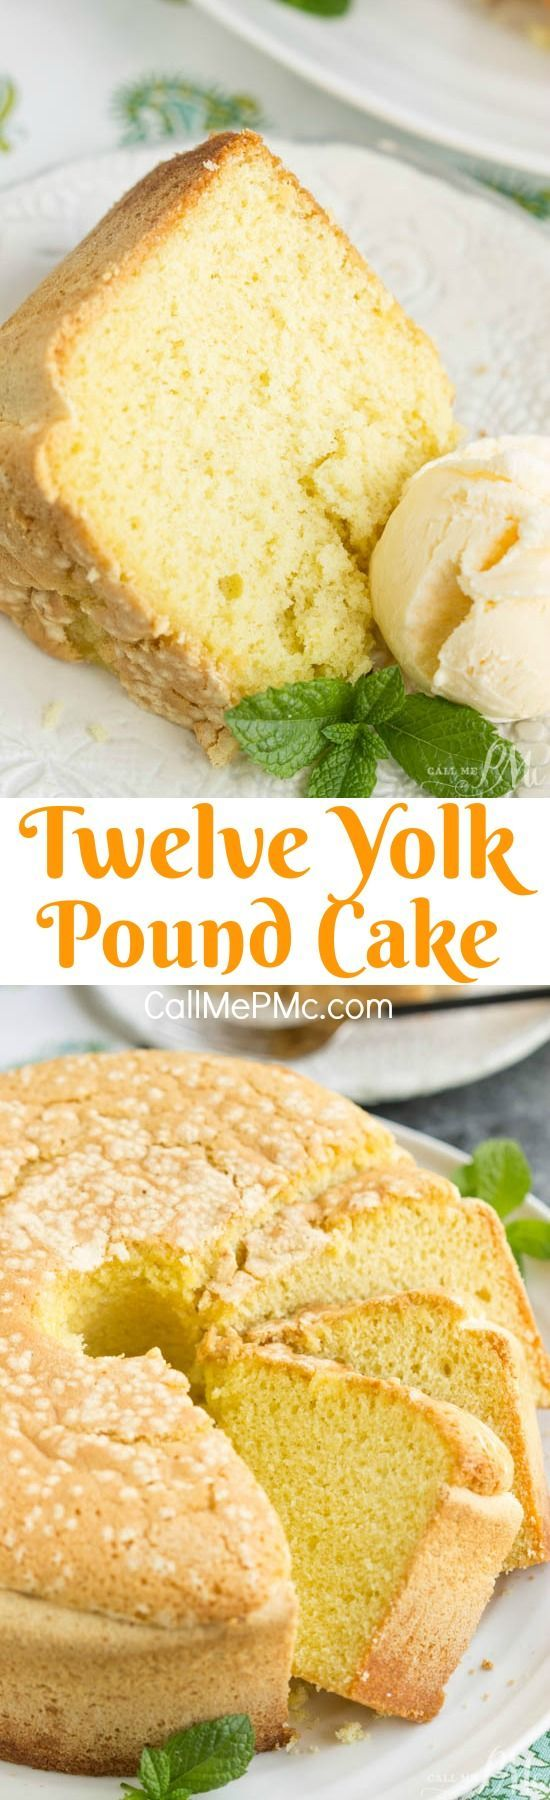 Twelve Yolk Pound Cake is buttery and luscious! Versatile basic cake that's great with ice cream! Get the recipe> http://www.callmepmc.com/twelve-yolk-pound-cake/?utm_campaign=coschedule&utm_source=pinterest&utm_medium=Paula | CallMePMc.com&utm_content=Twelve Yolk Pound Cake: